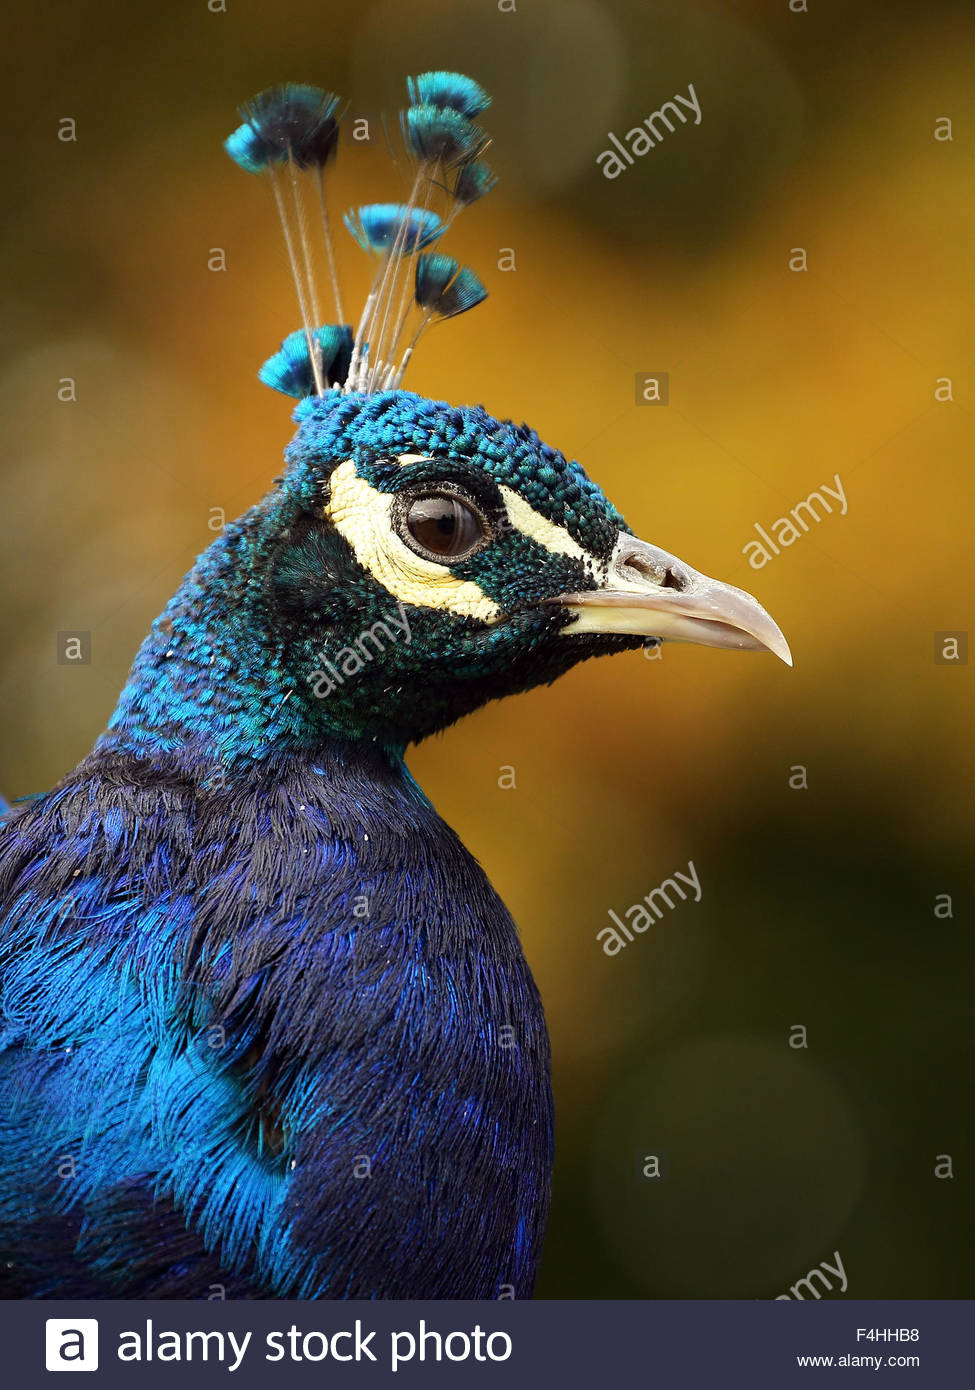 A close-up shot of a colourful male Peafowl. - Stock Image